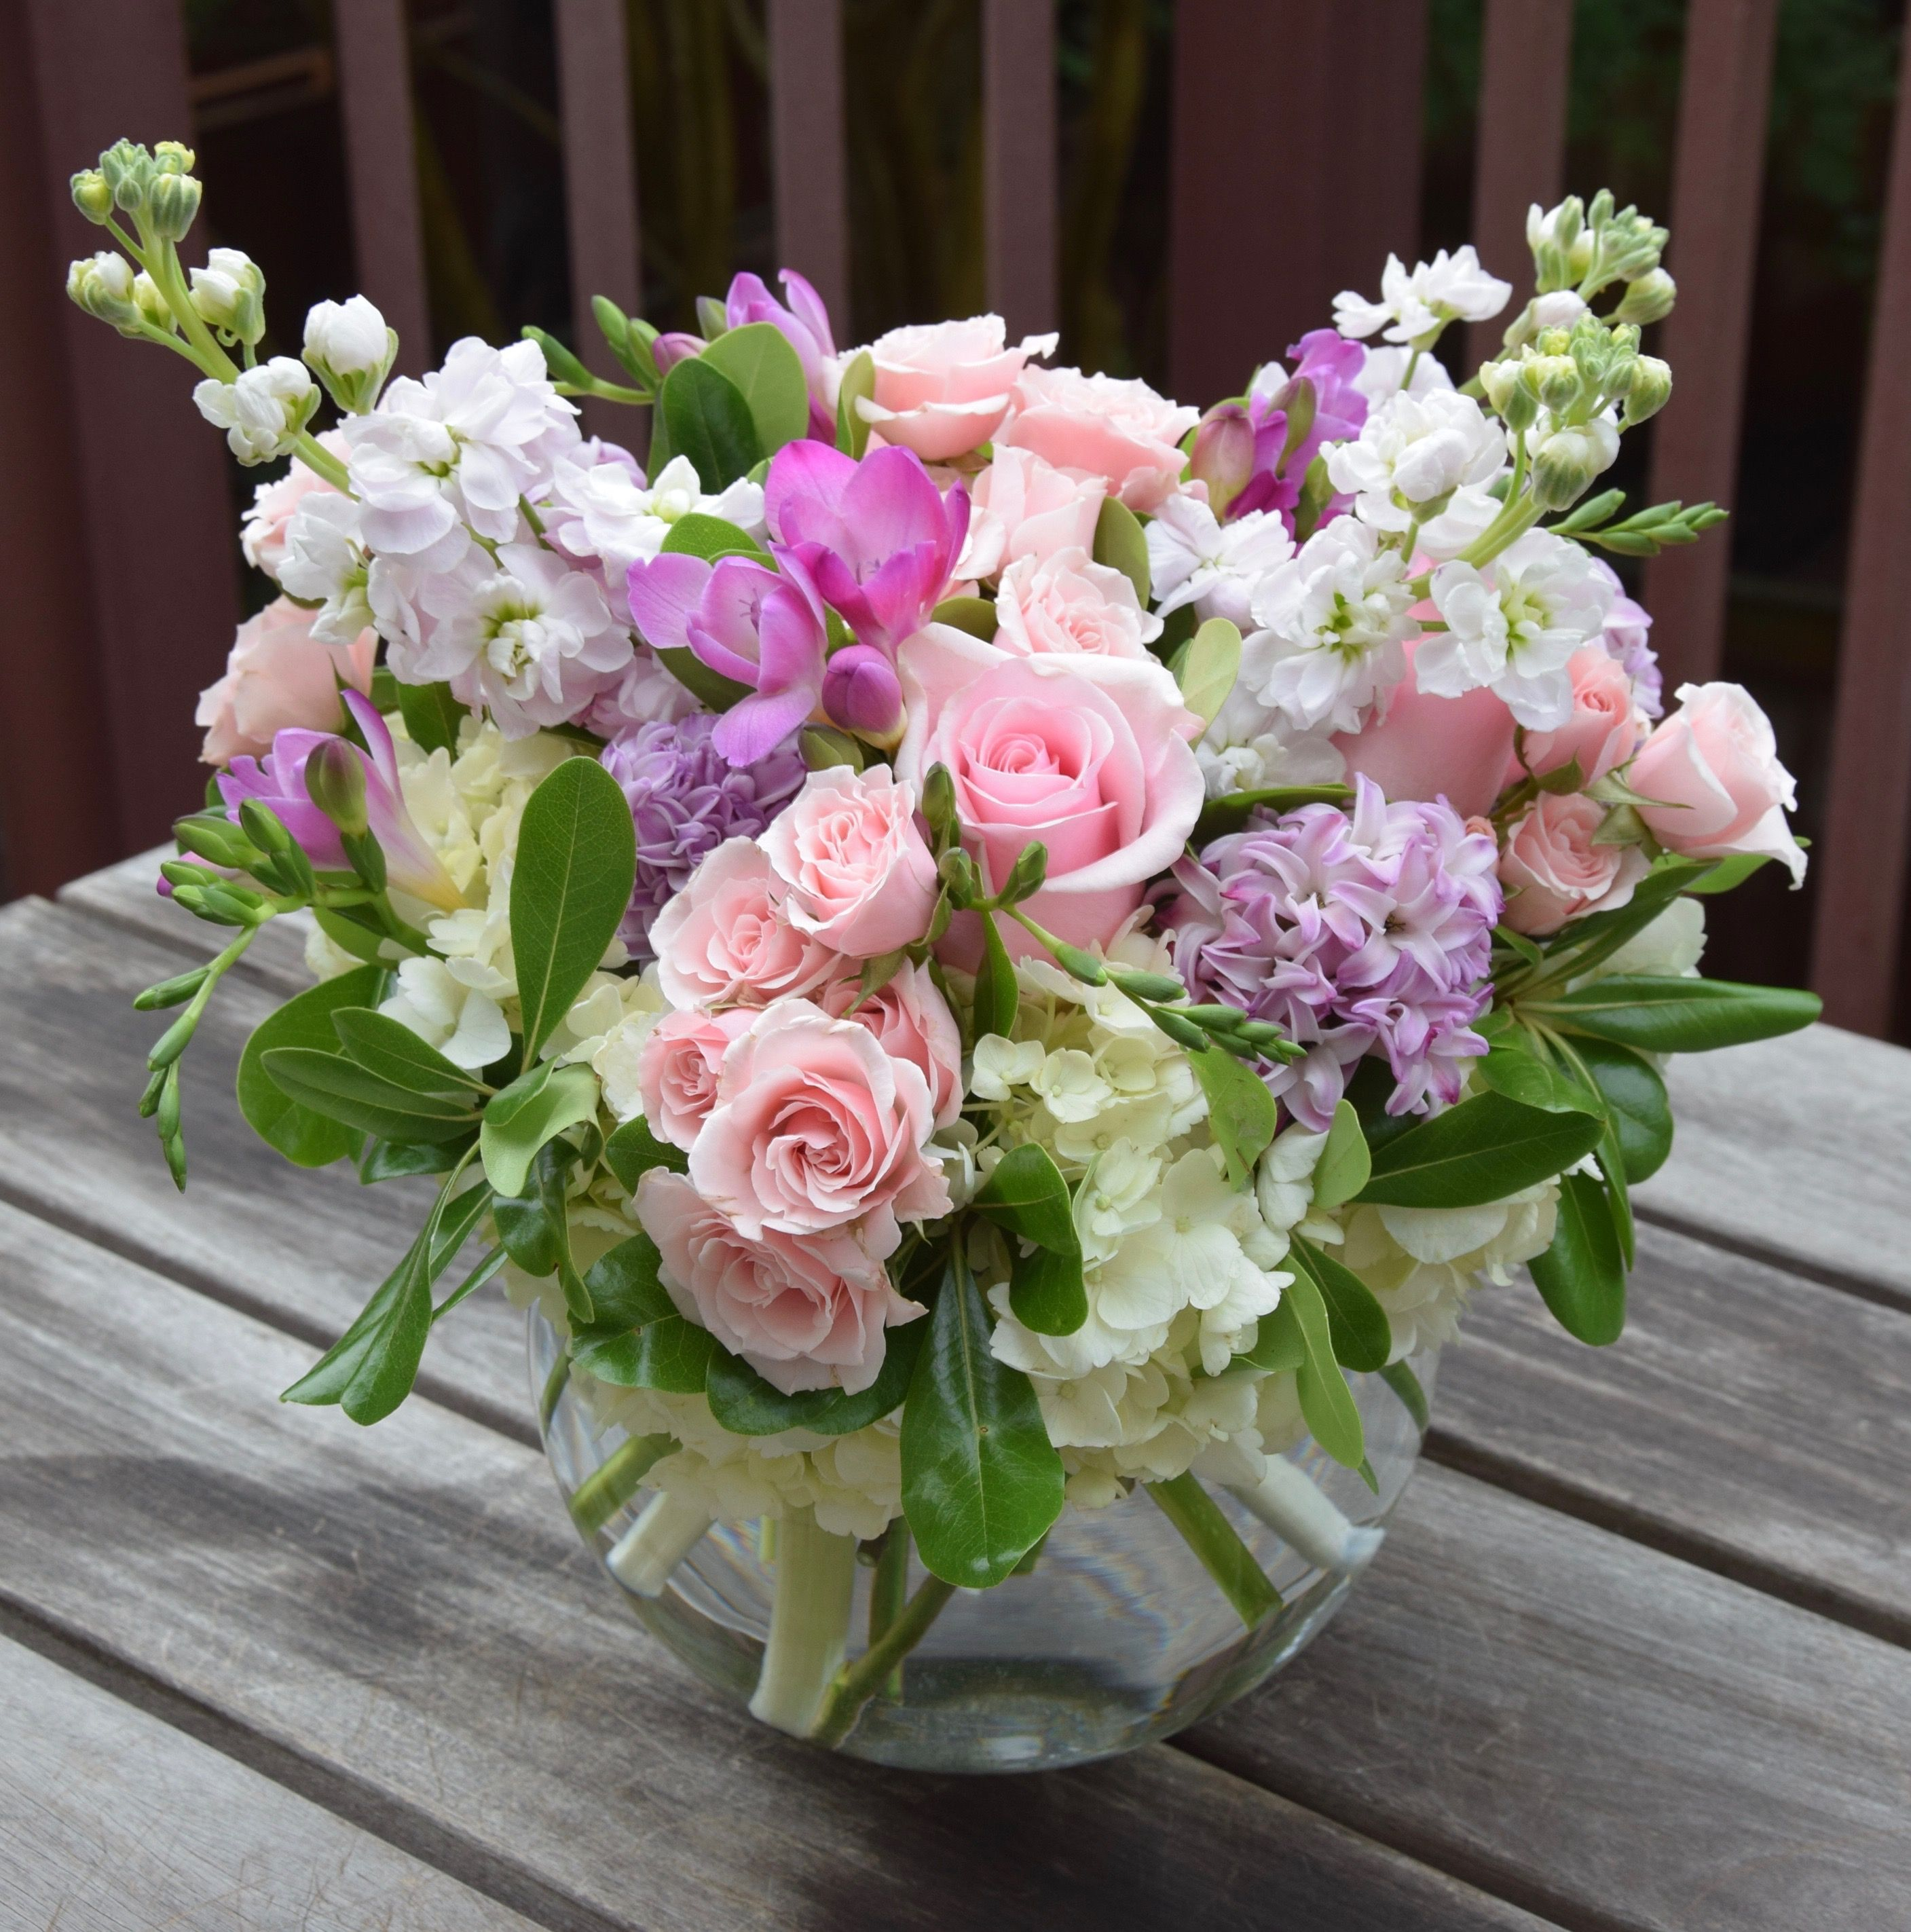 Fragrant flower arrangement for Mother's Day with